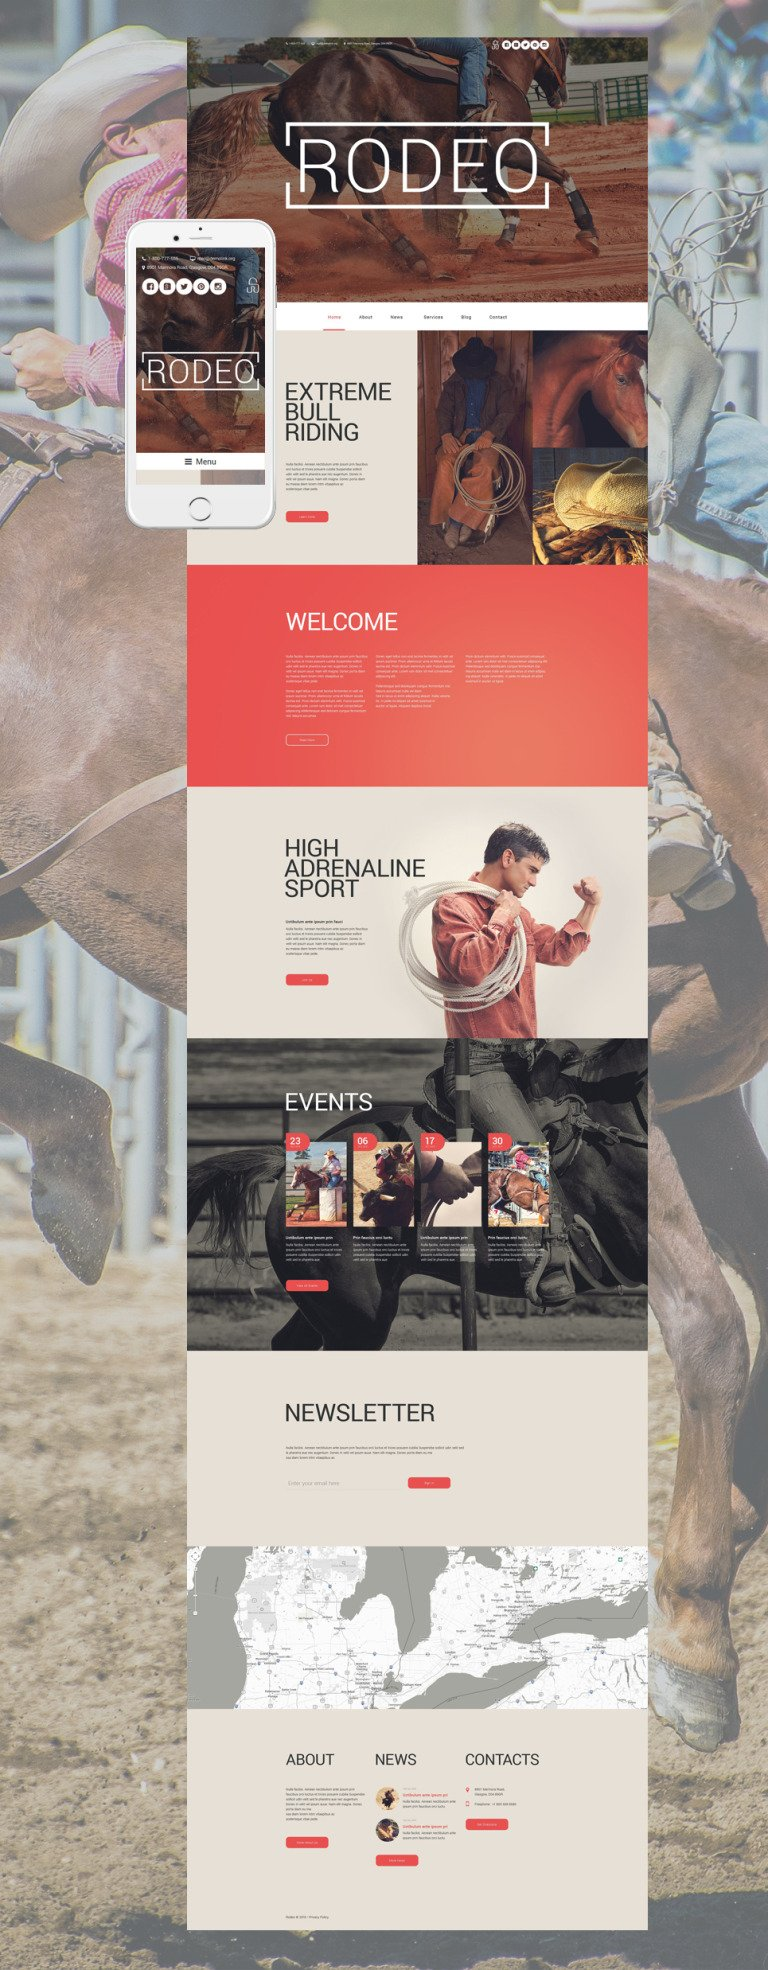 Rodeo Arena WordPress Theme New Screenshots BIG